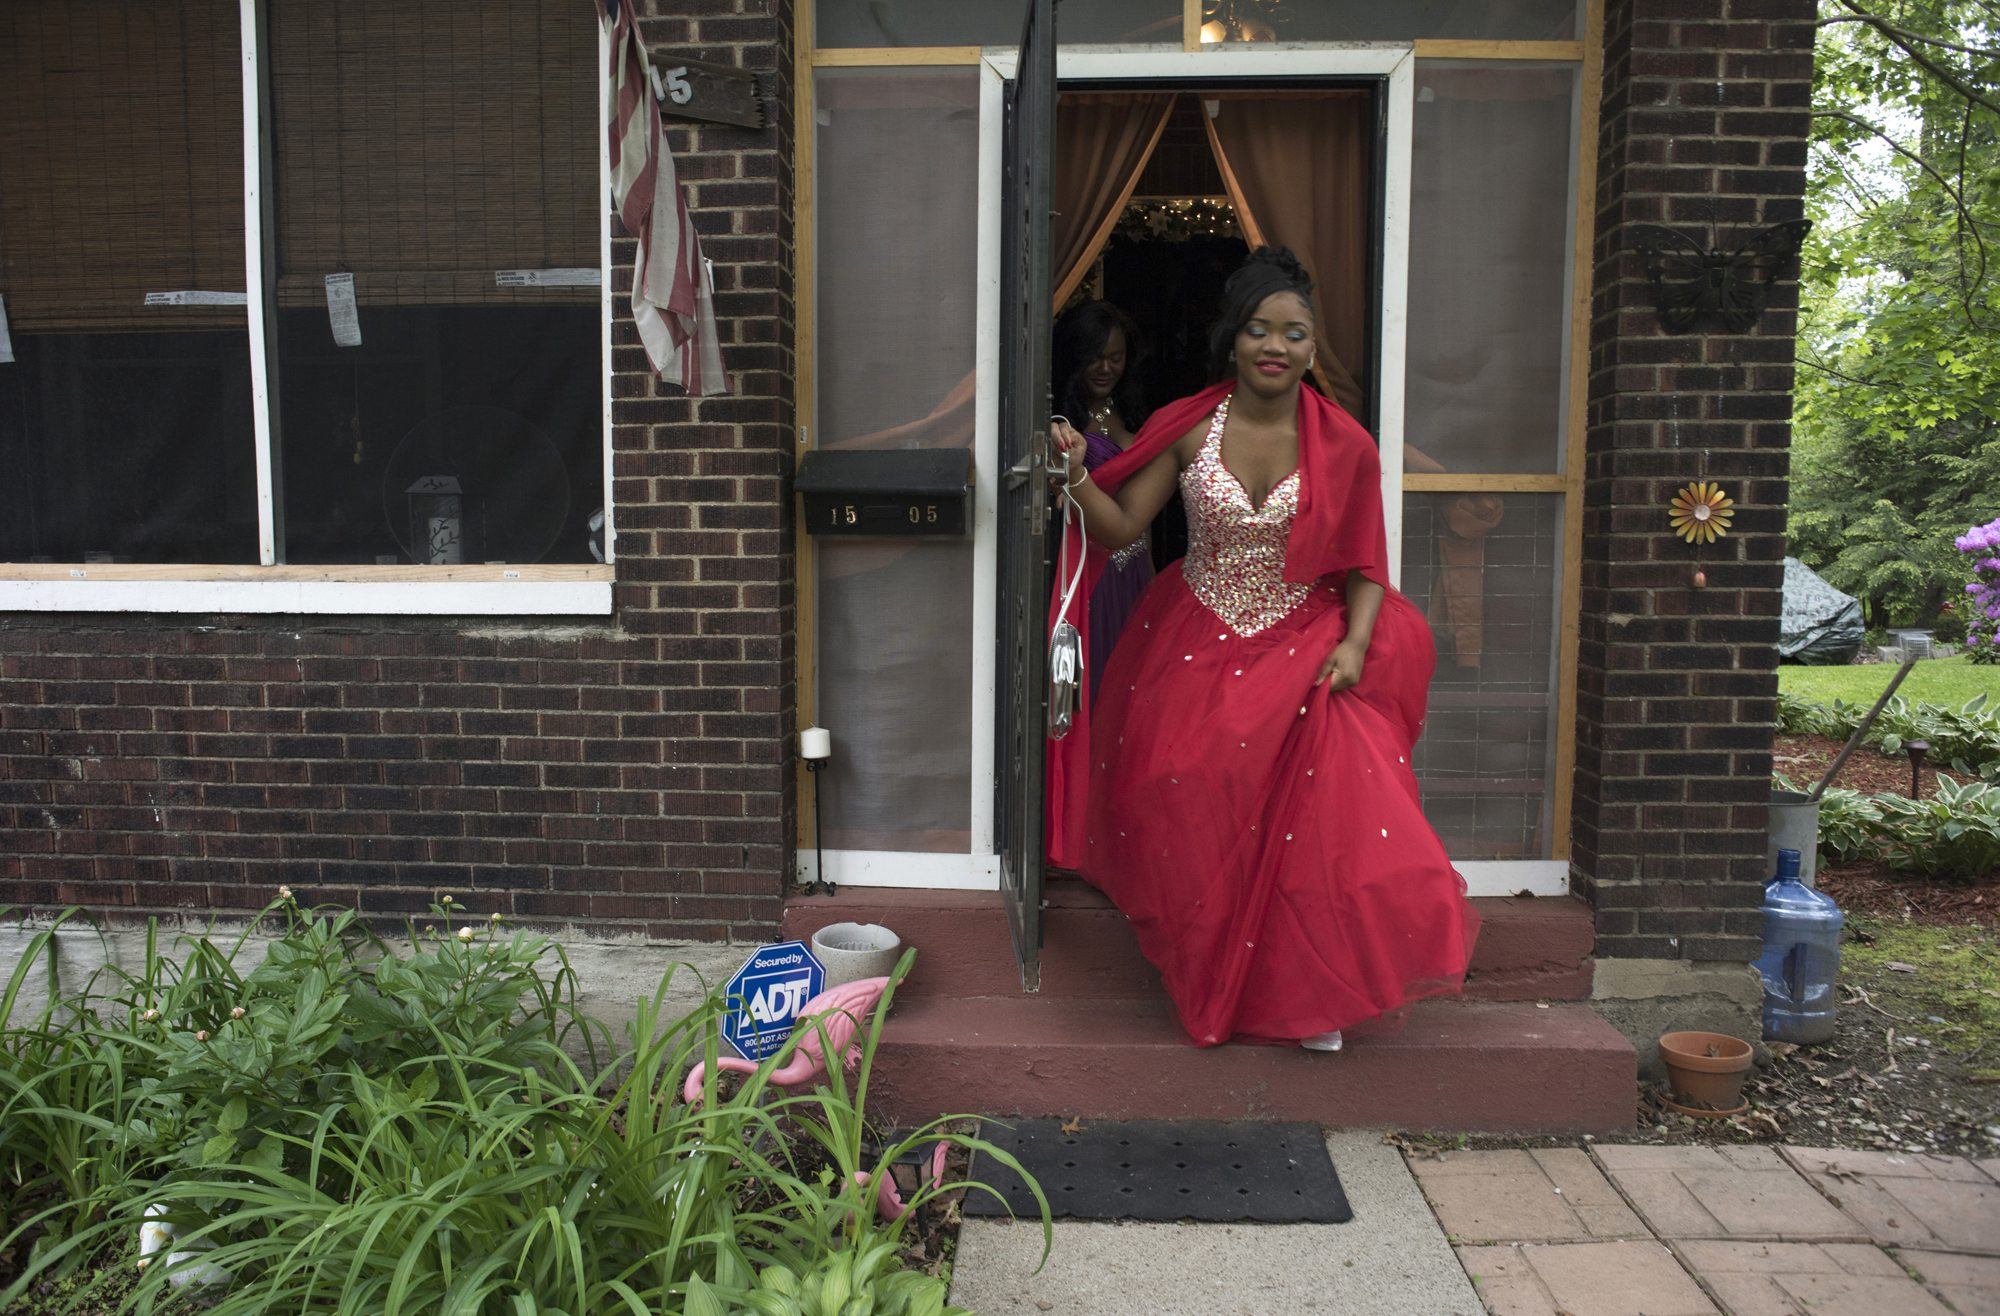 Tyneisha Wilder leaves her foster home in Wilkinsburg for East Allegheny High School's Promenade. Promenade is a high school tradition when the couples line up and are presented before an audience of family, friends and community members. (Photo by Martha Rial/PublicSource)